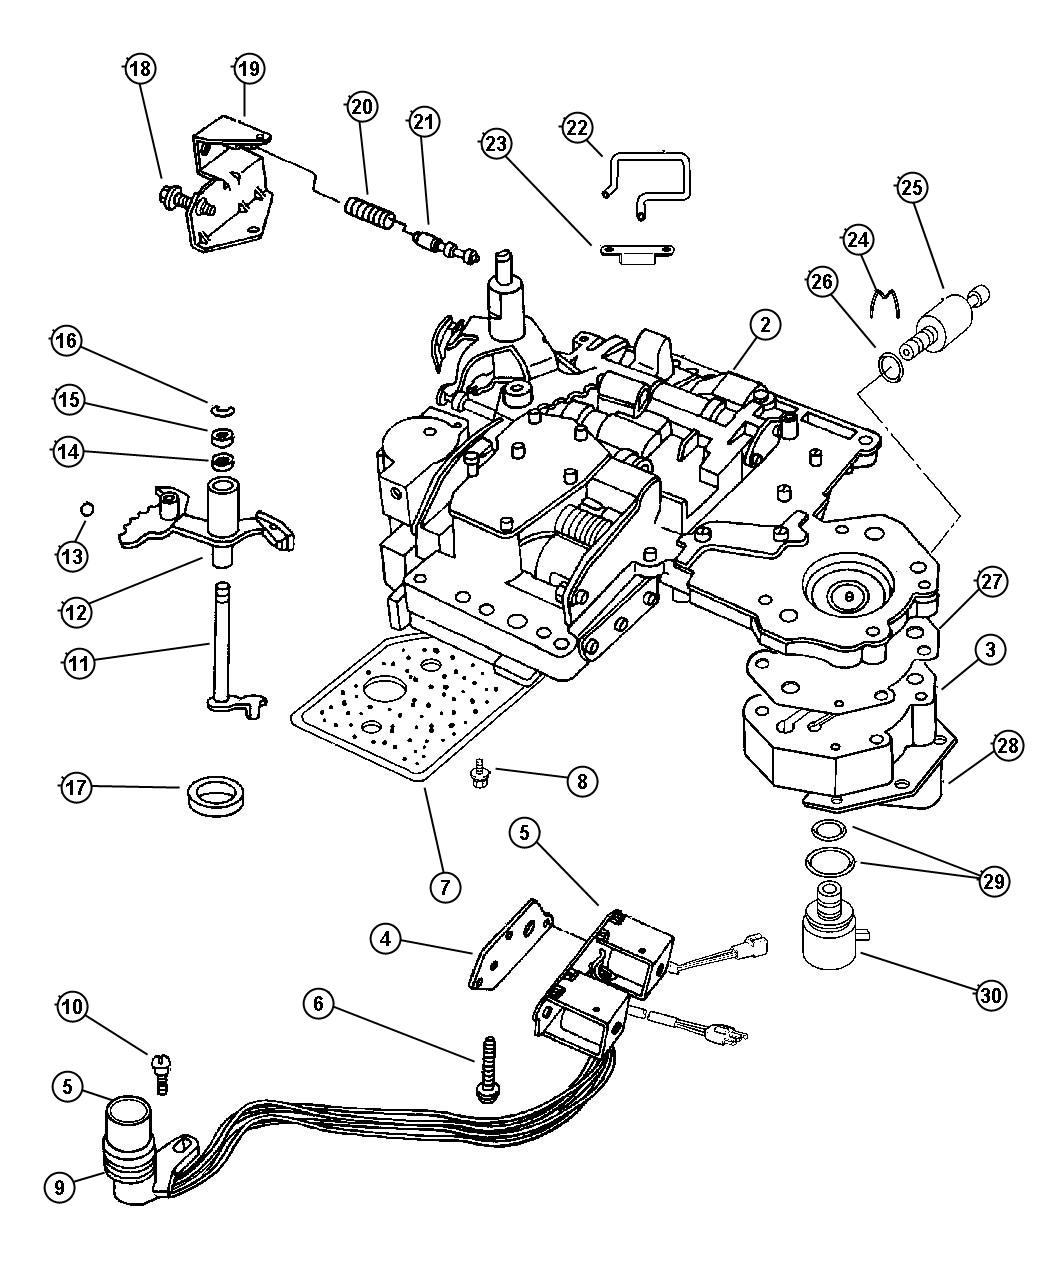 Dodge Ram Reverse Light Wiring Diagram